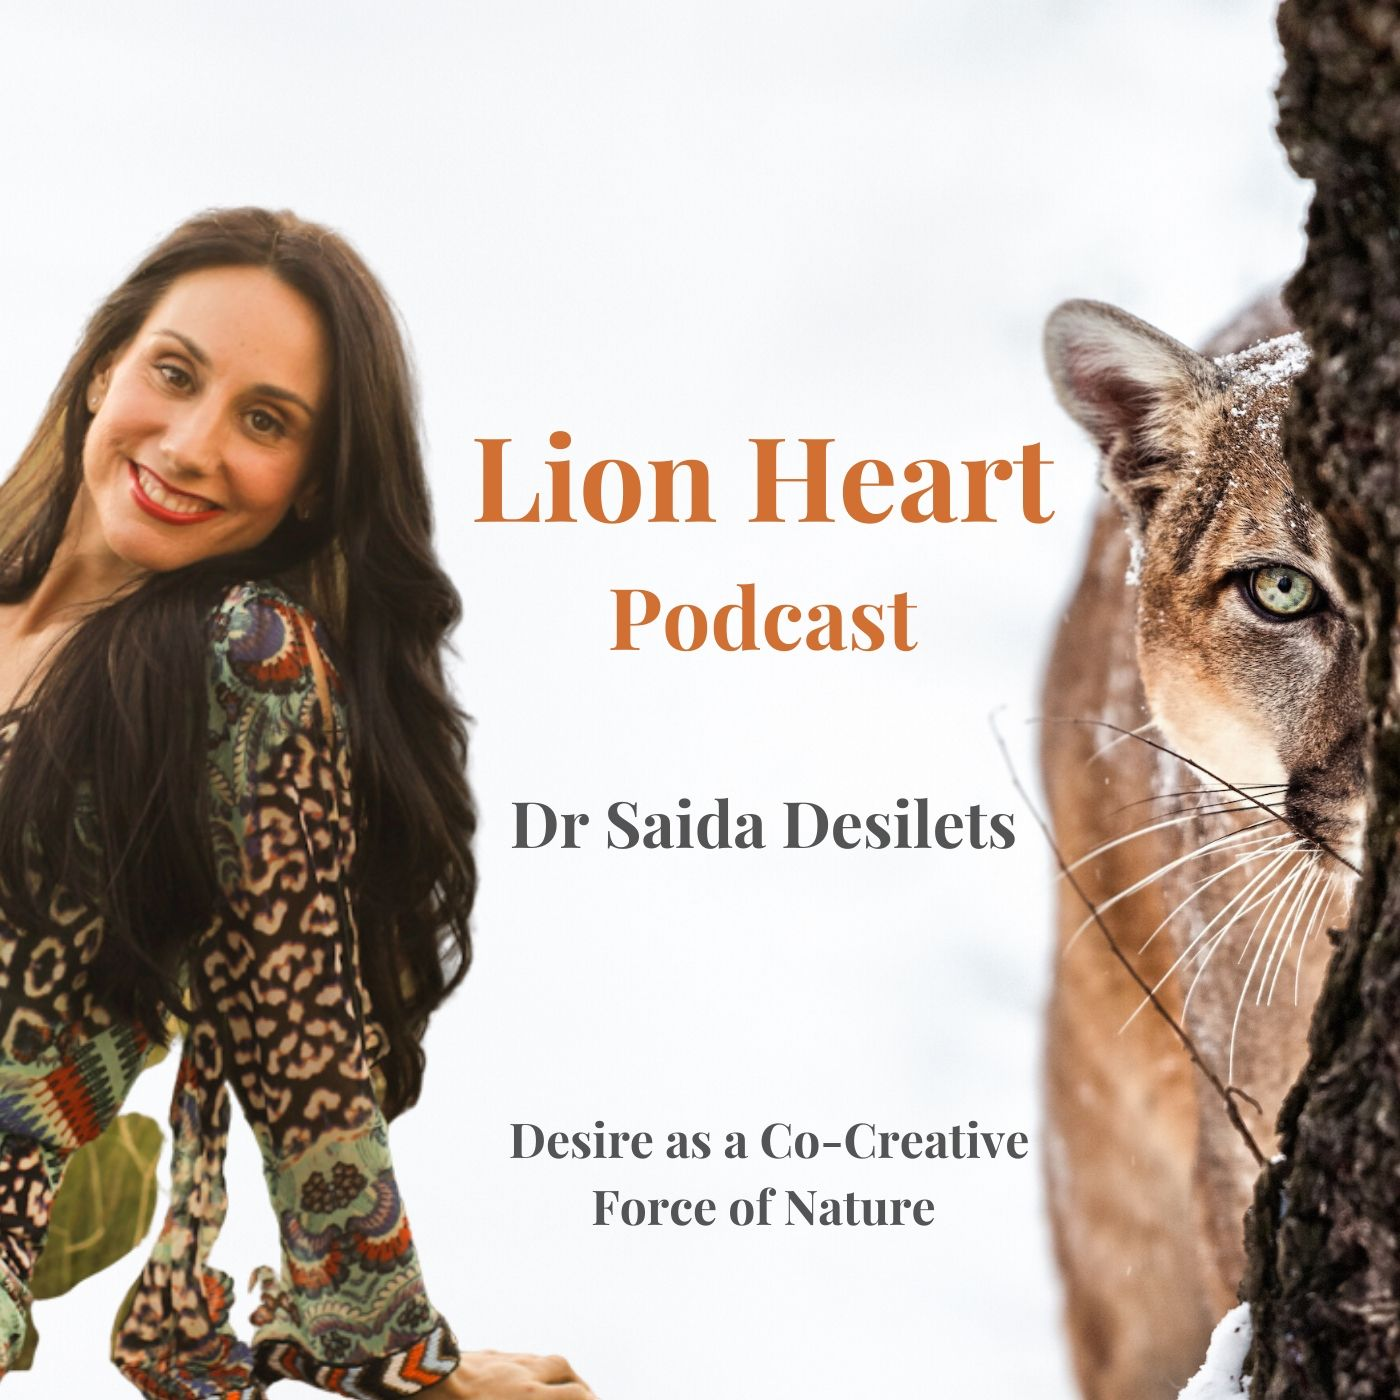 Desire as a Living Force of Nature with Dr Saida Desilets - E7